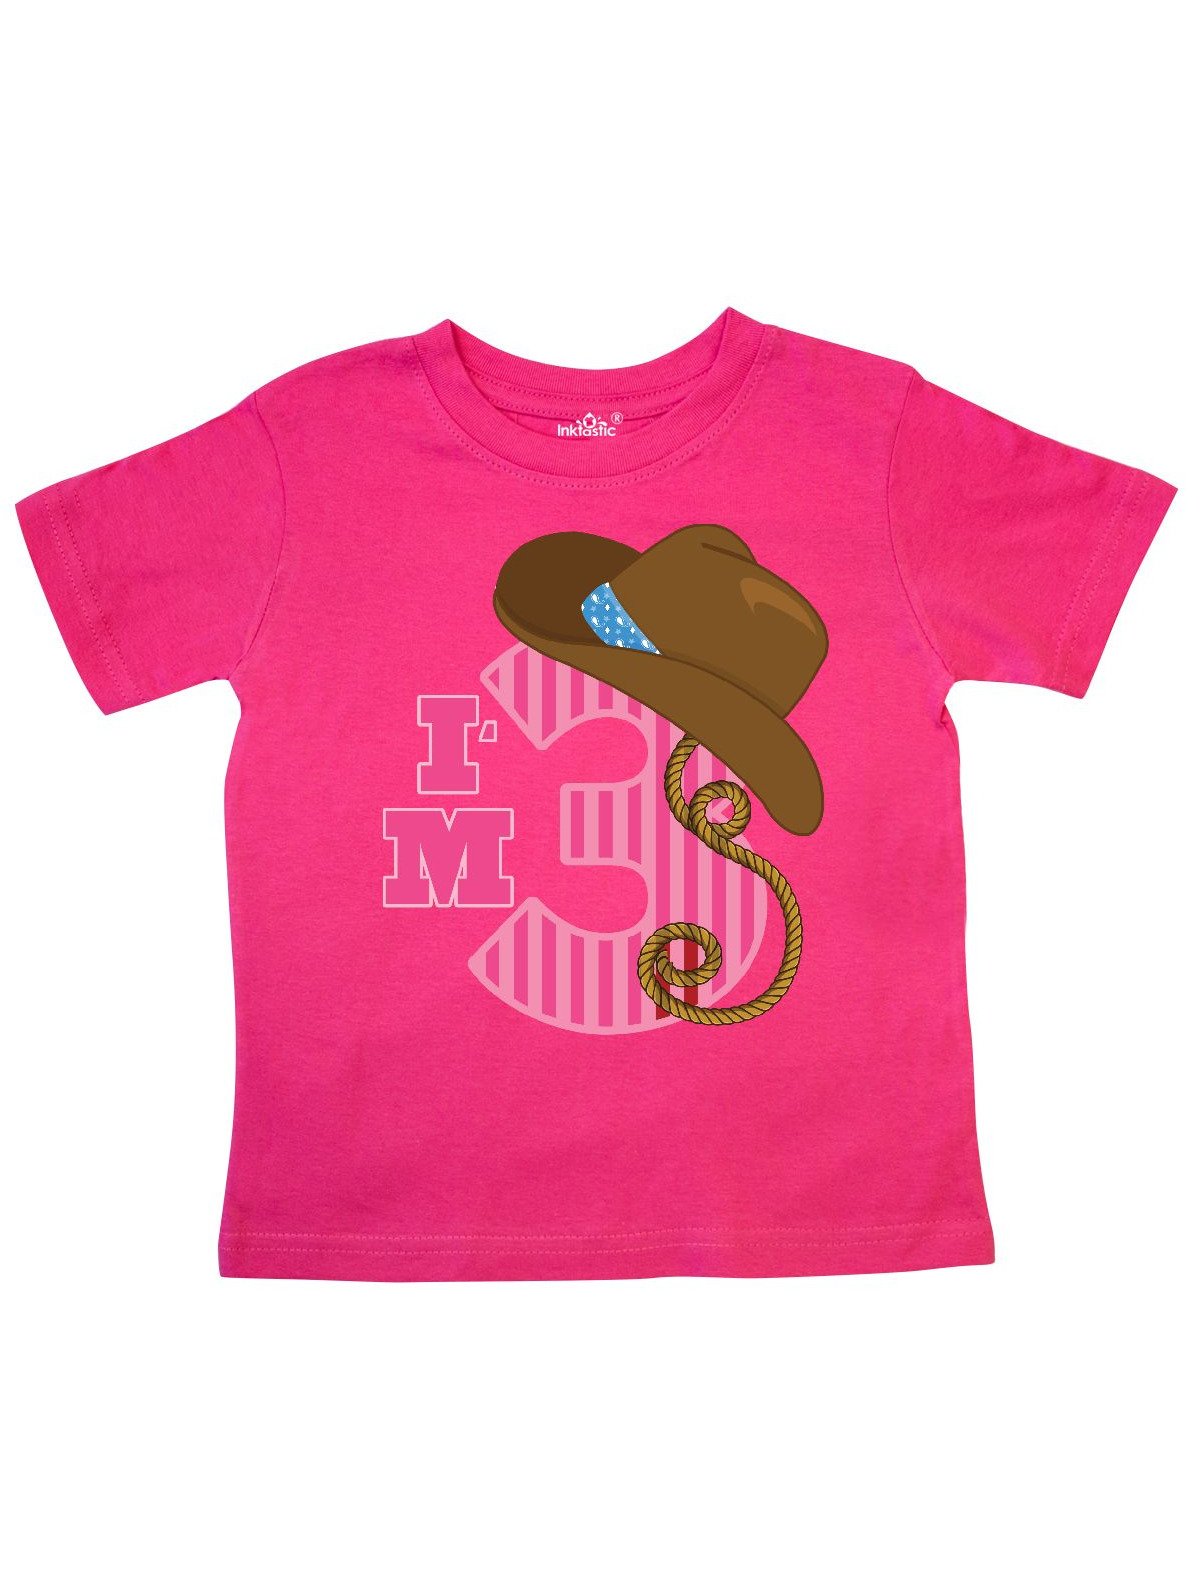 inktastic Cowgirl Birthday 3 Years Old with Cowgirl Boots Toddler T-Shirt